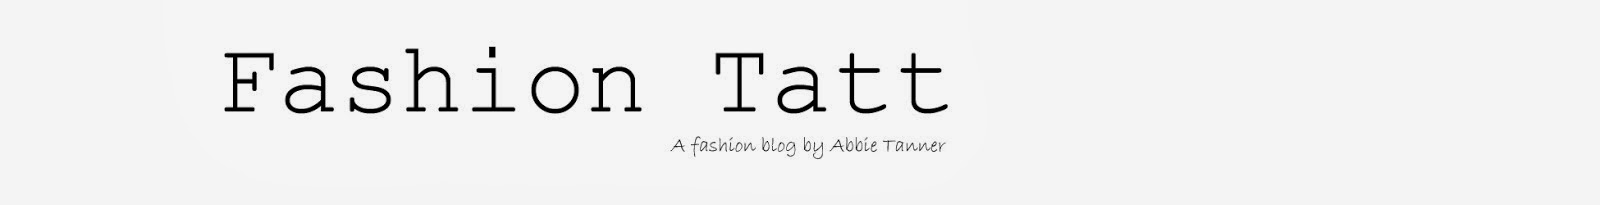 FASHION TATT